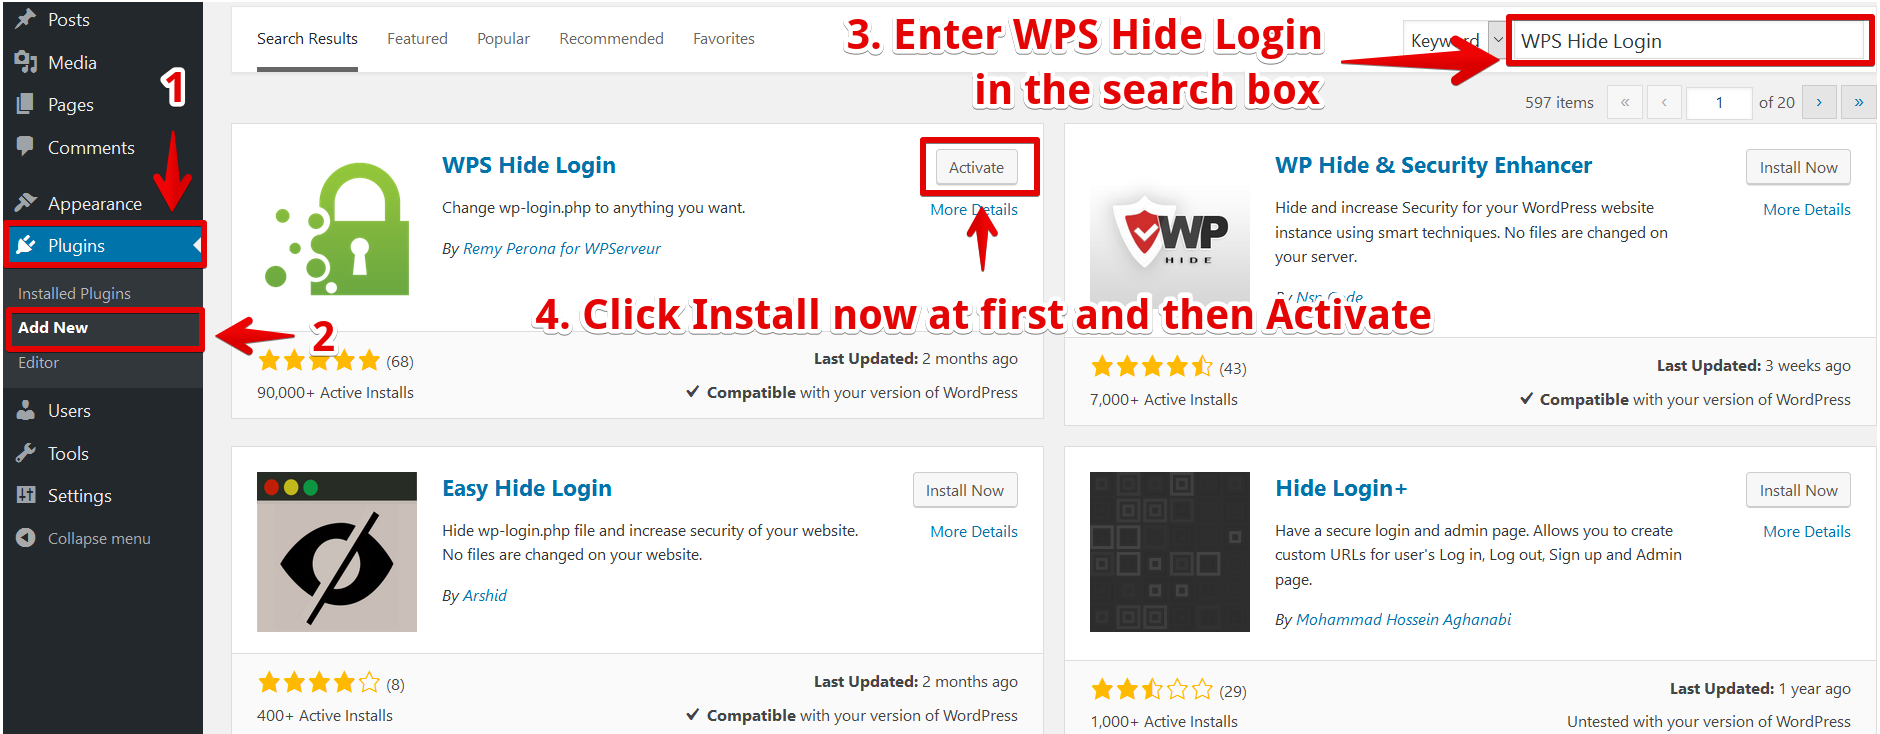 Get the WPS Hide Login plugin